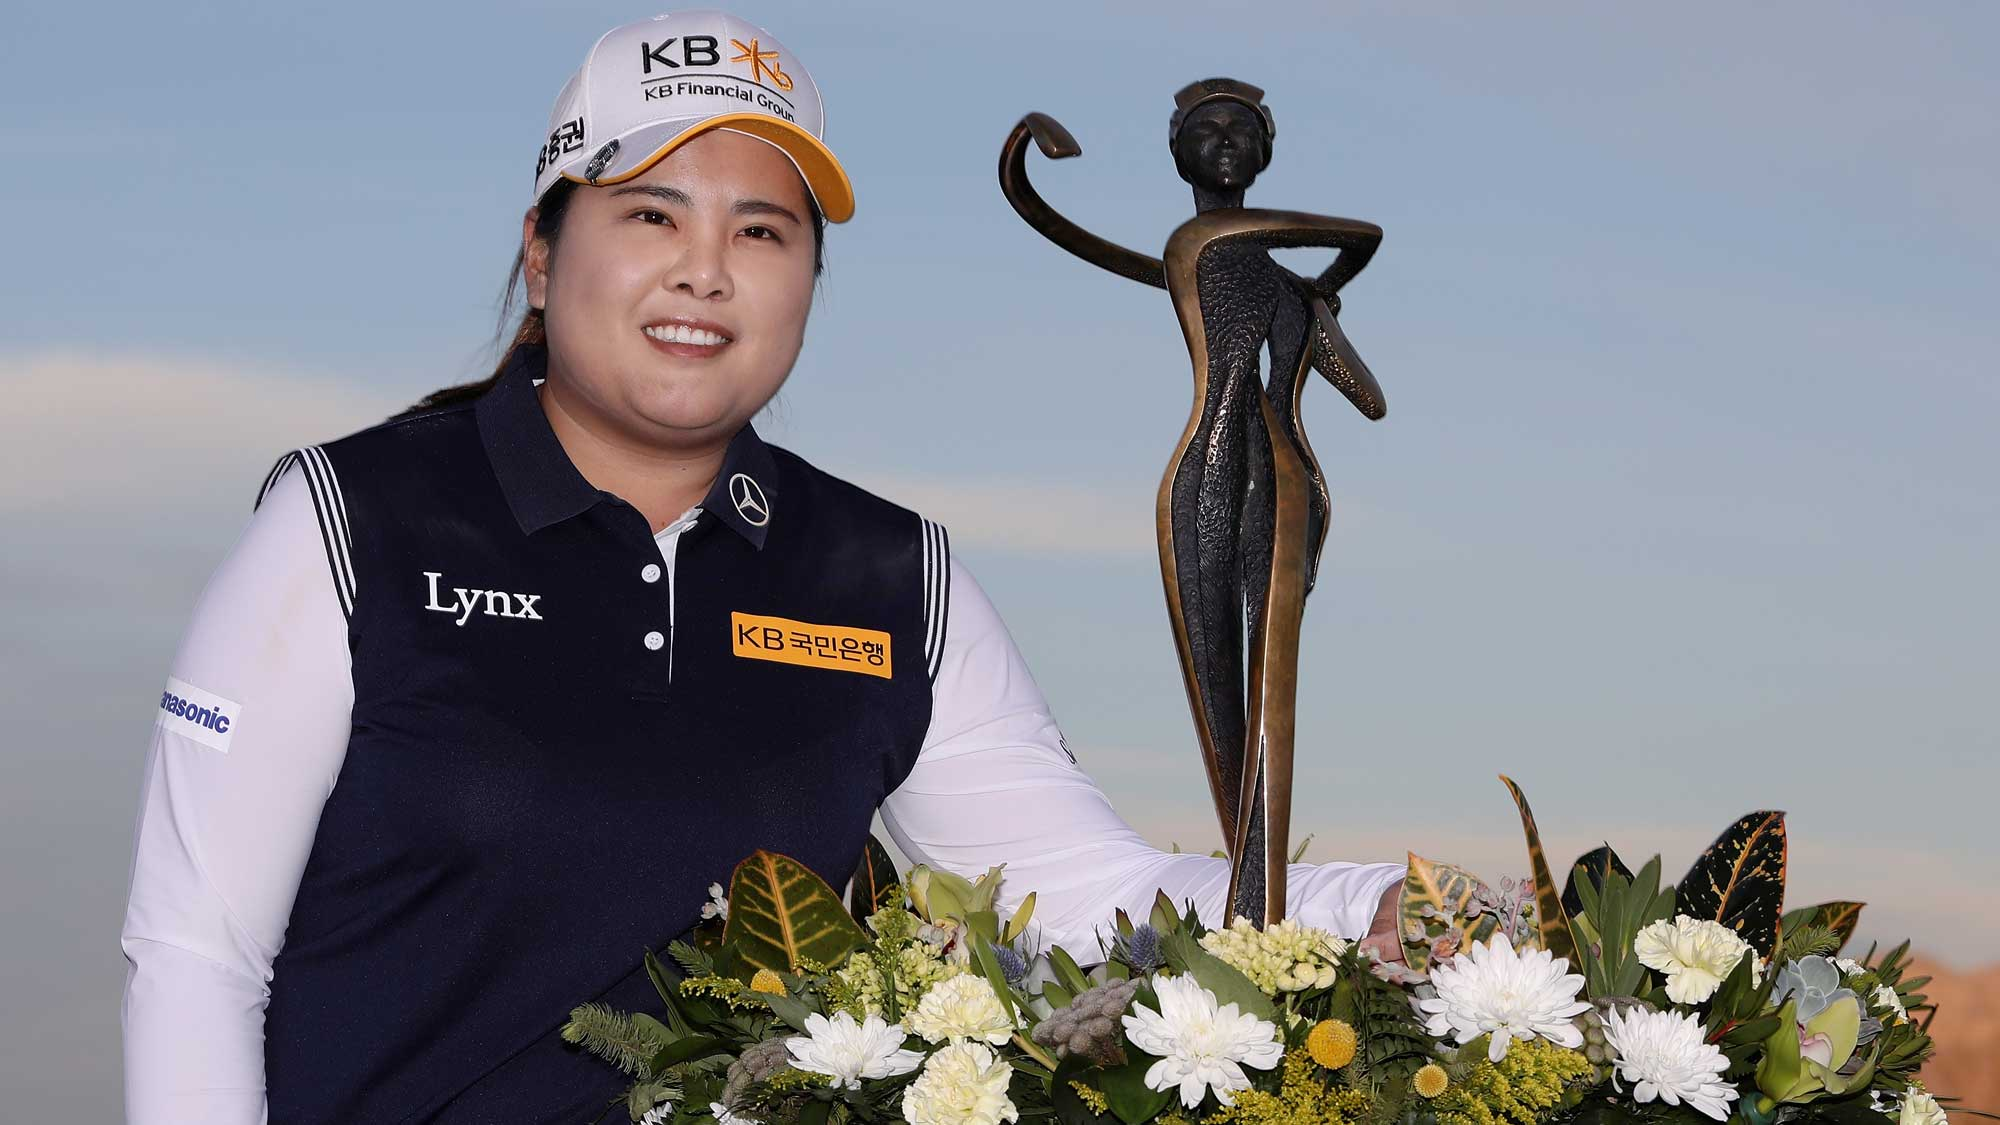 Inbee Park Wins the Founders Cup